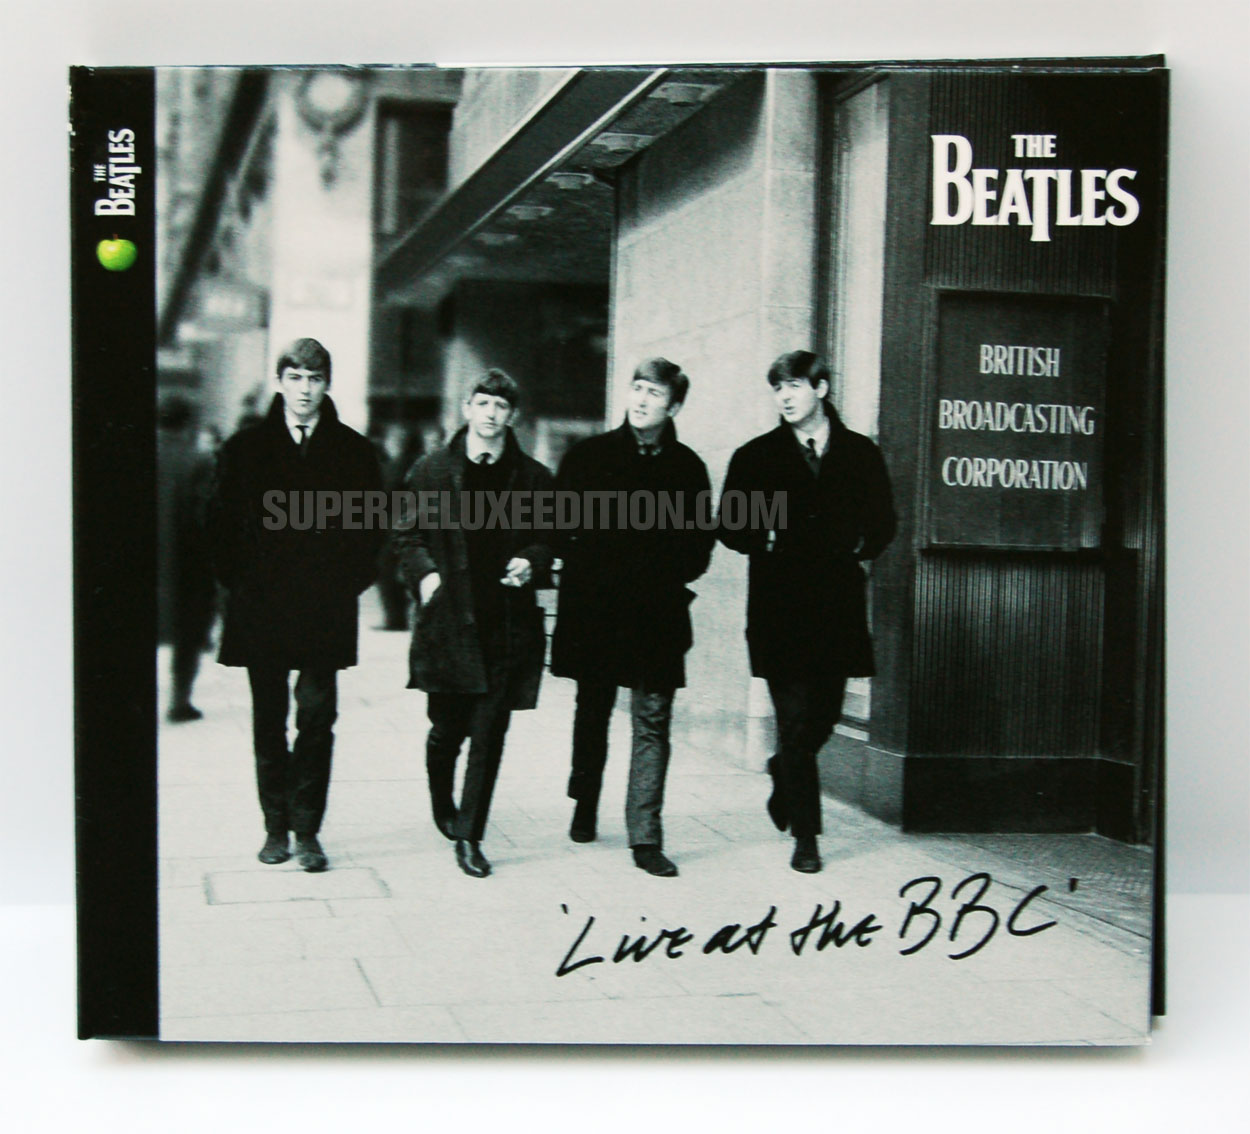 FIRST PICTURES: The Beatles / Live at the BBC: The Collection